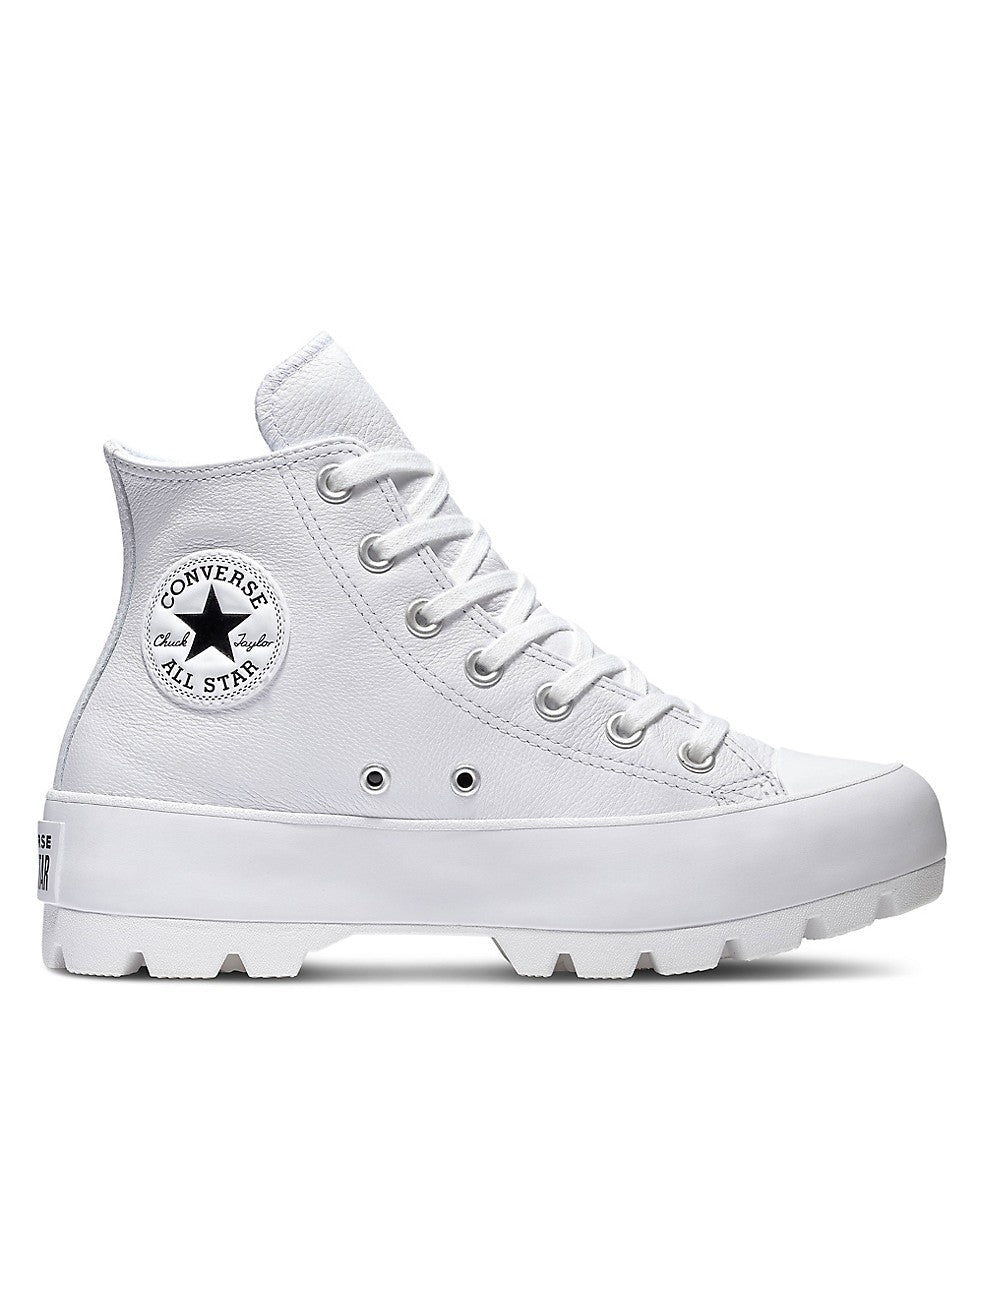 Chuck Taylor All Star Lugged High Tops